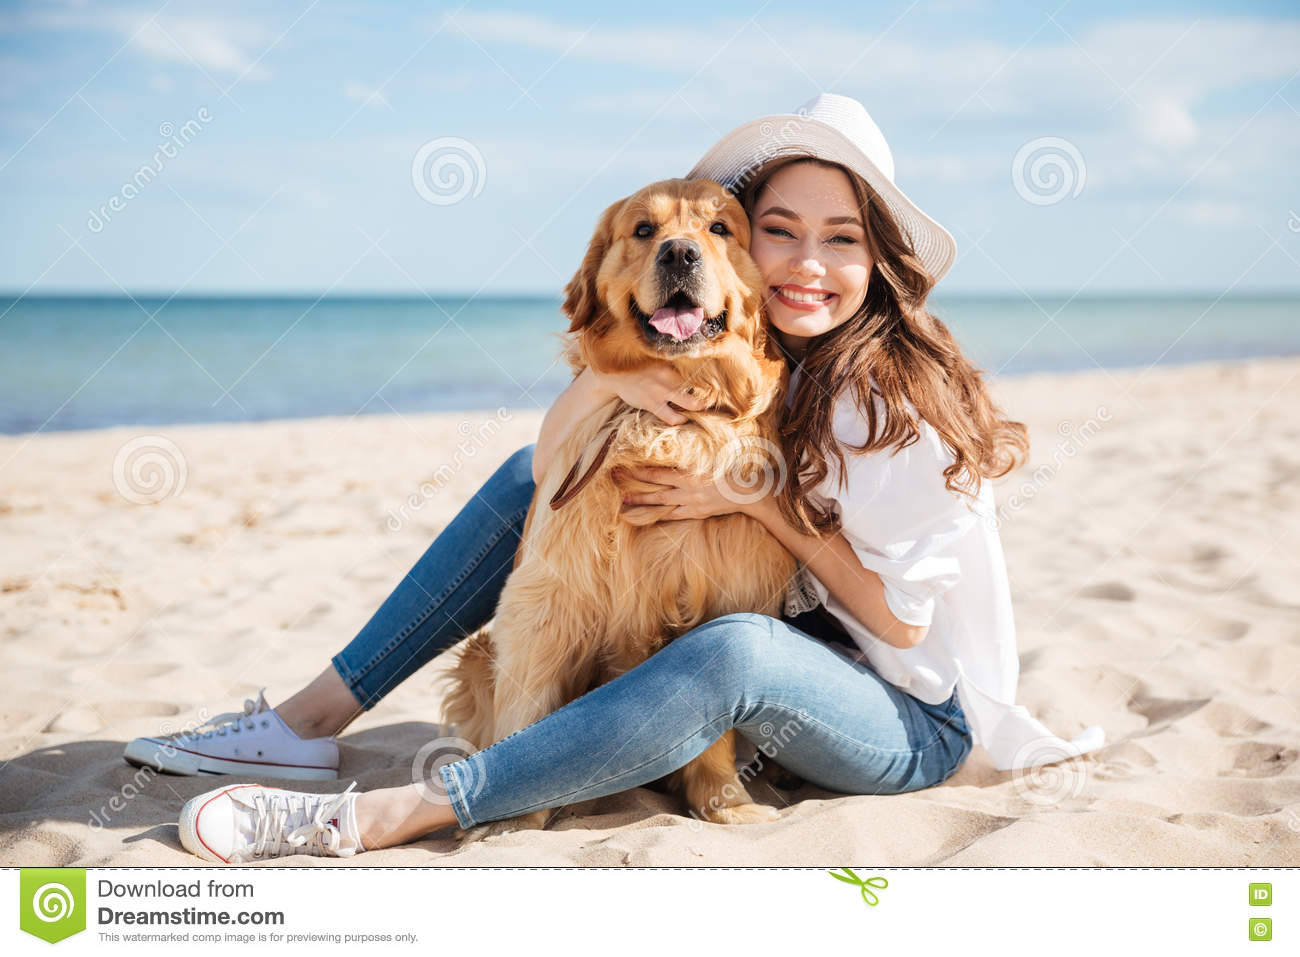 Cheerful young woman sitting and hugging her dog on beach